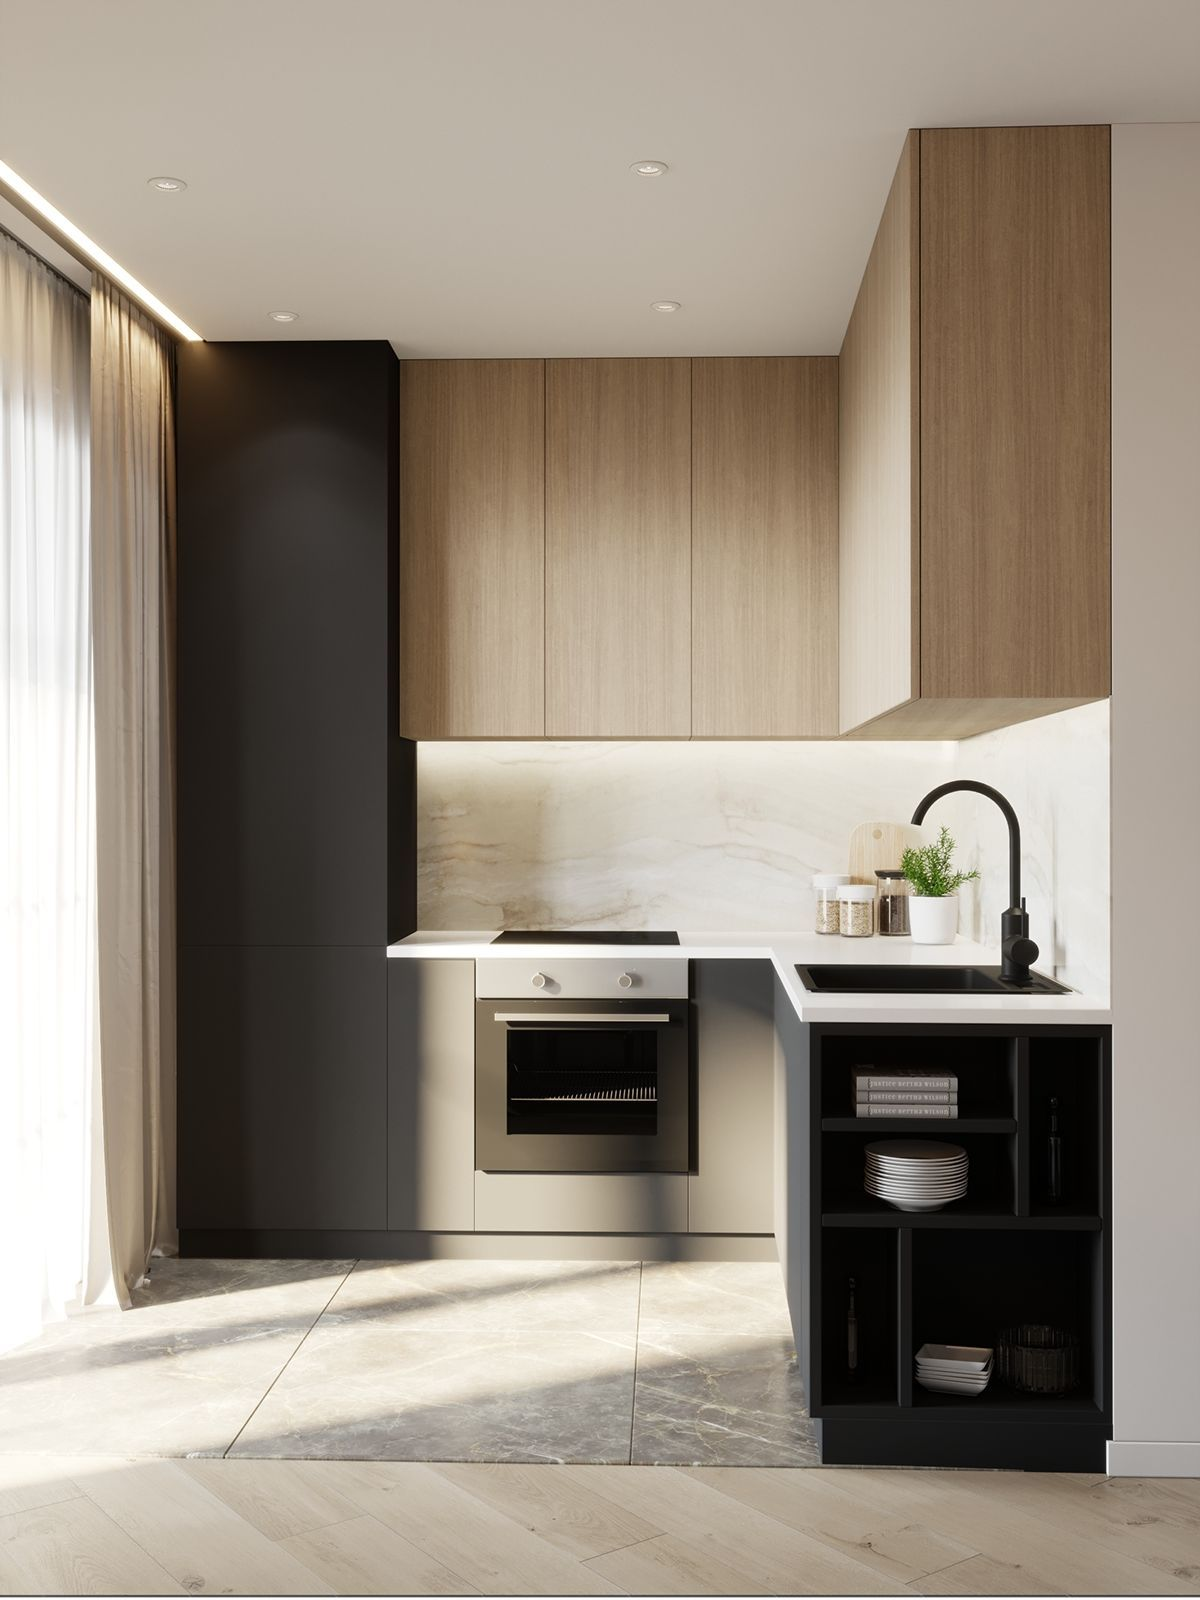 Apartments In Minsk Residential Complex Aquamarine On Behance Simple Kitchen Design Small Modern Kitchens Small Kitchen Decor Simple small kitchen ideas